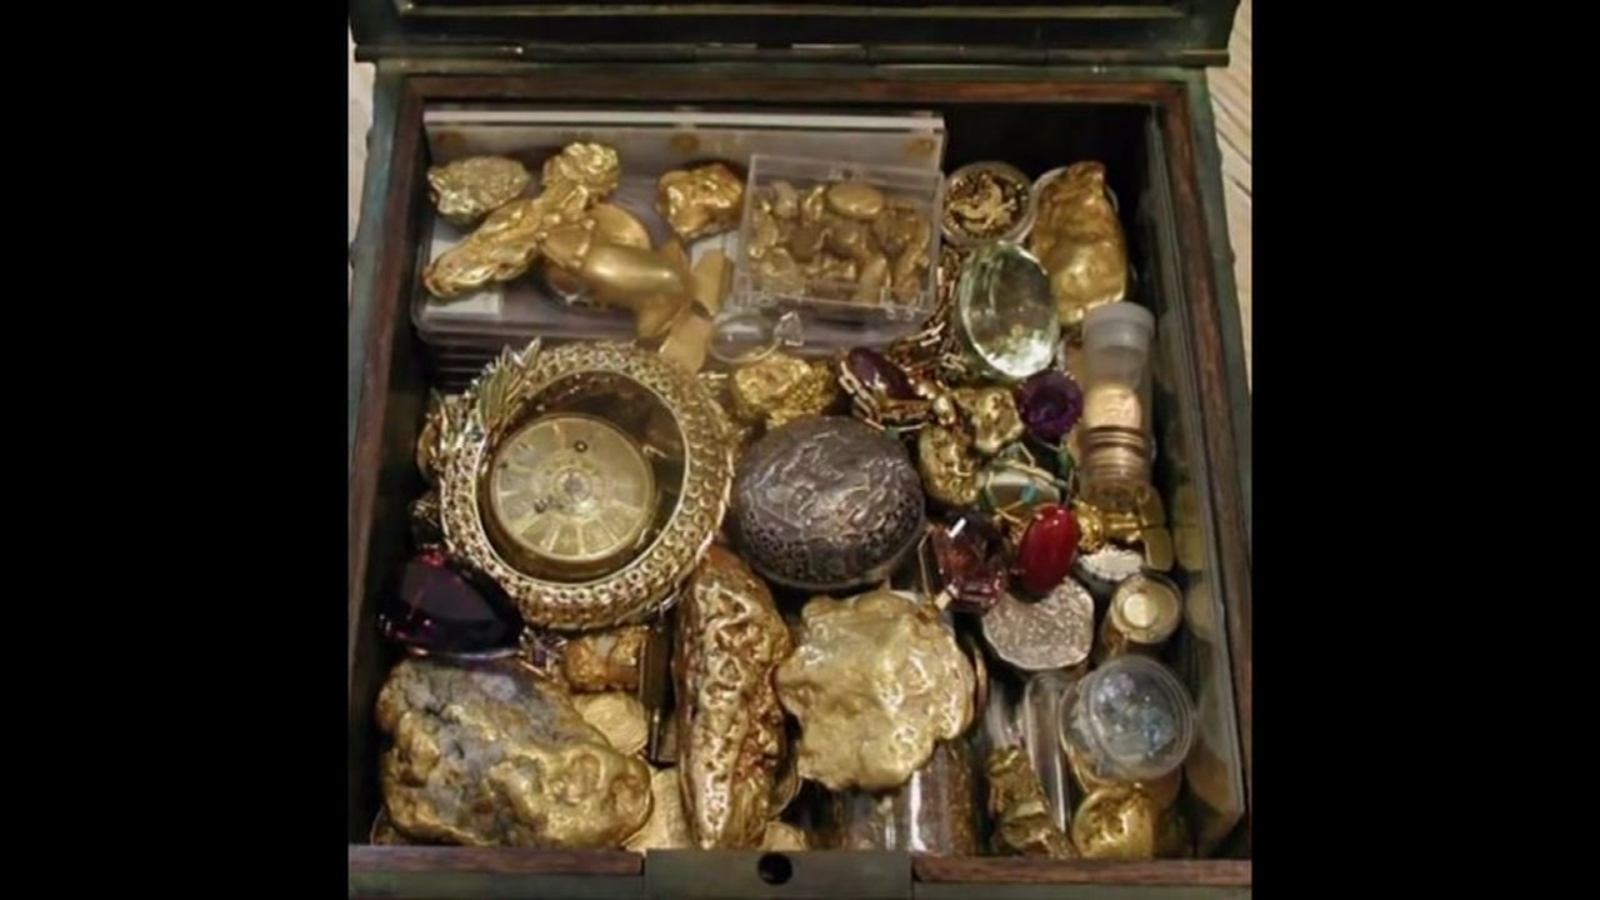 Sheriff gives stern warning to people searching for hidden treasure